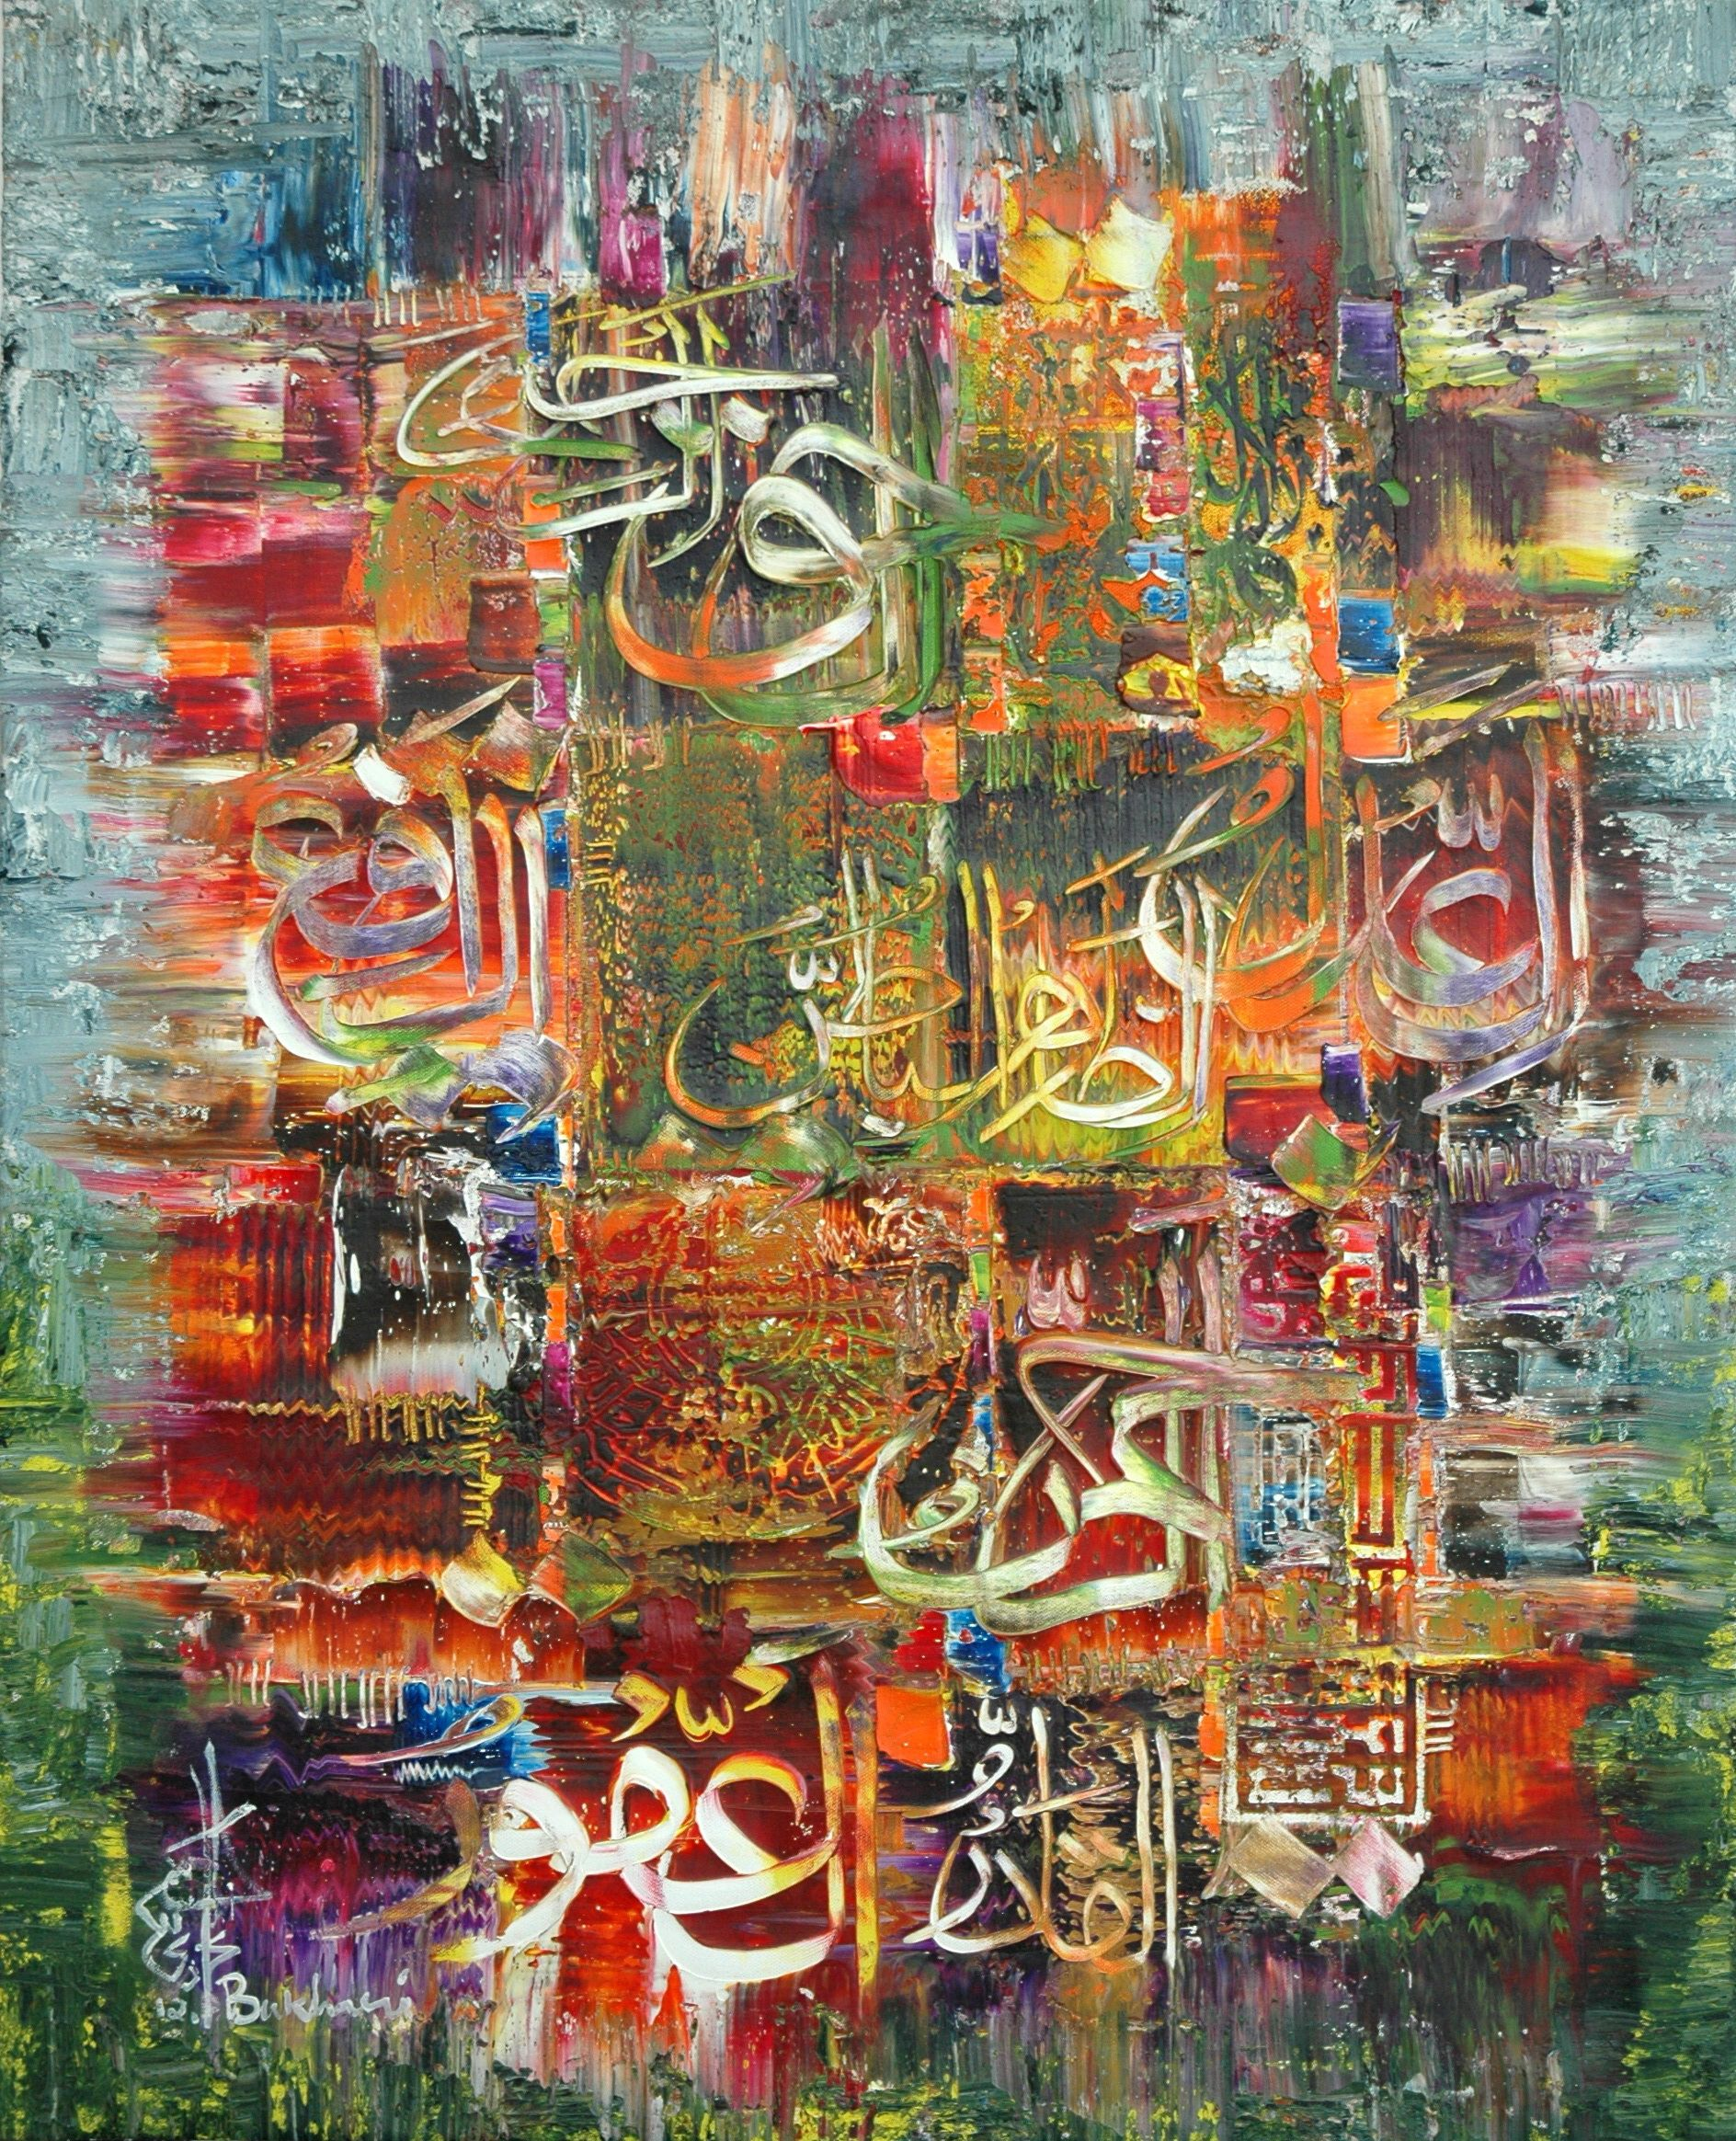 Khalid Song Quotes Wallpaper July 2013 Glory Art Gallery Dubai خط Calligraphy